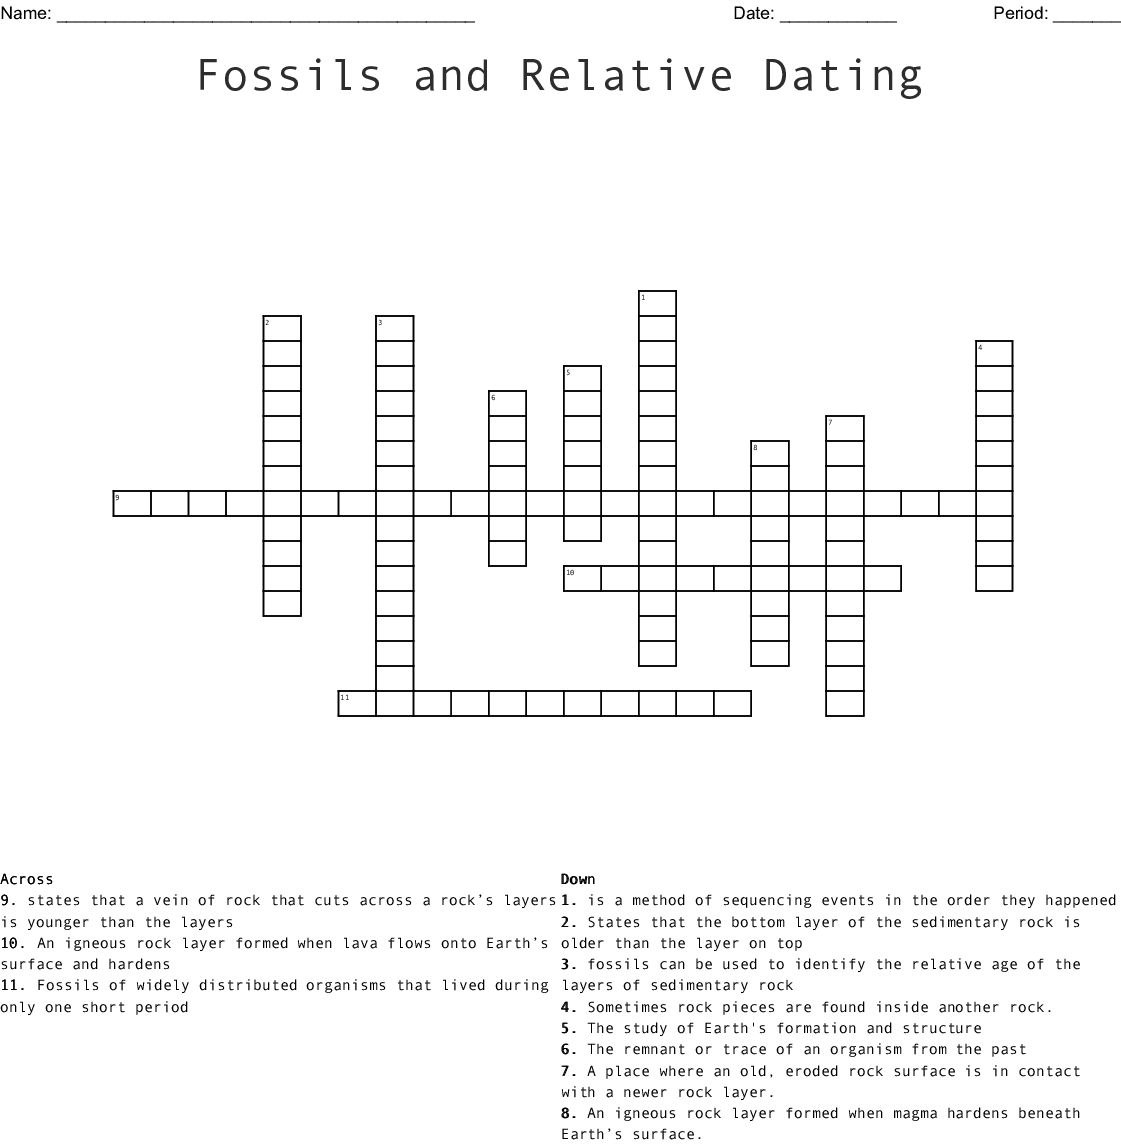 Fossils And Relative Dating Crossword